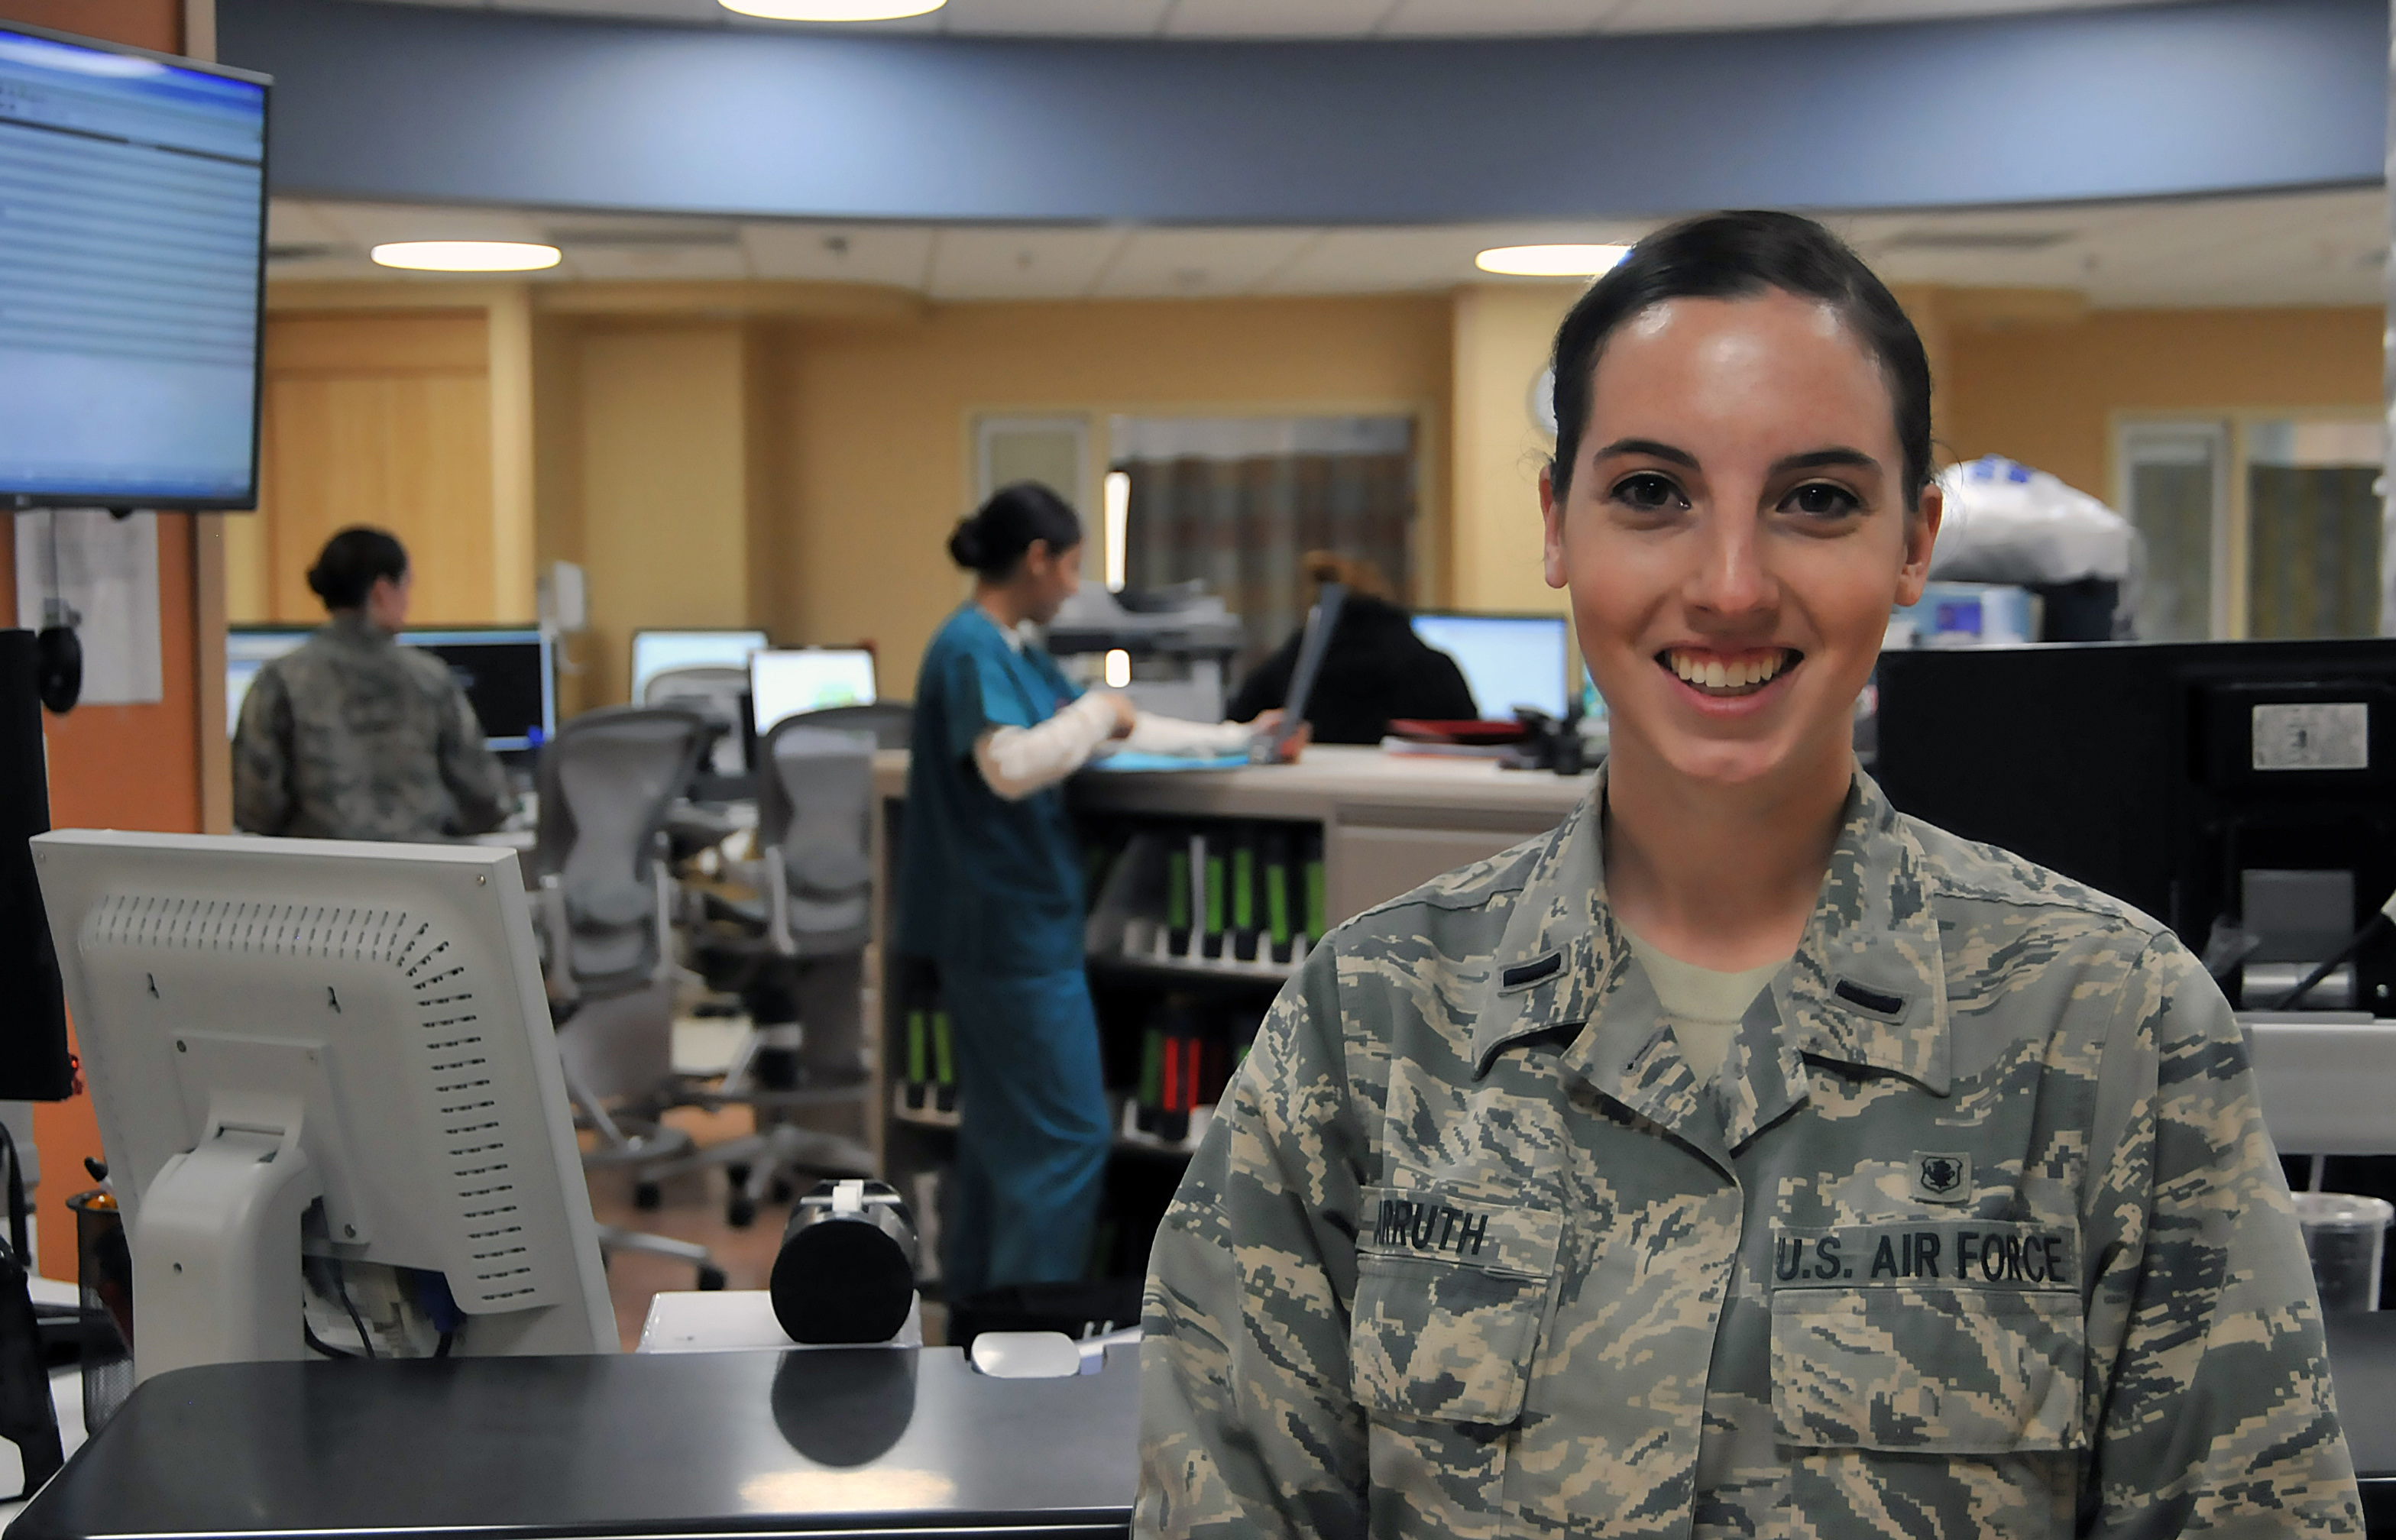 2017 Military Pay Chart: First Lt. Carruth: Keesler7s Trusted Care Hero e Keesler Air Force ,Chart